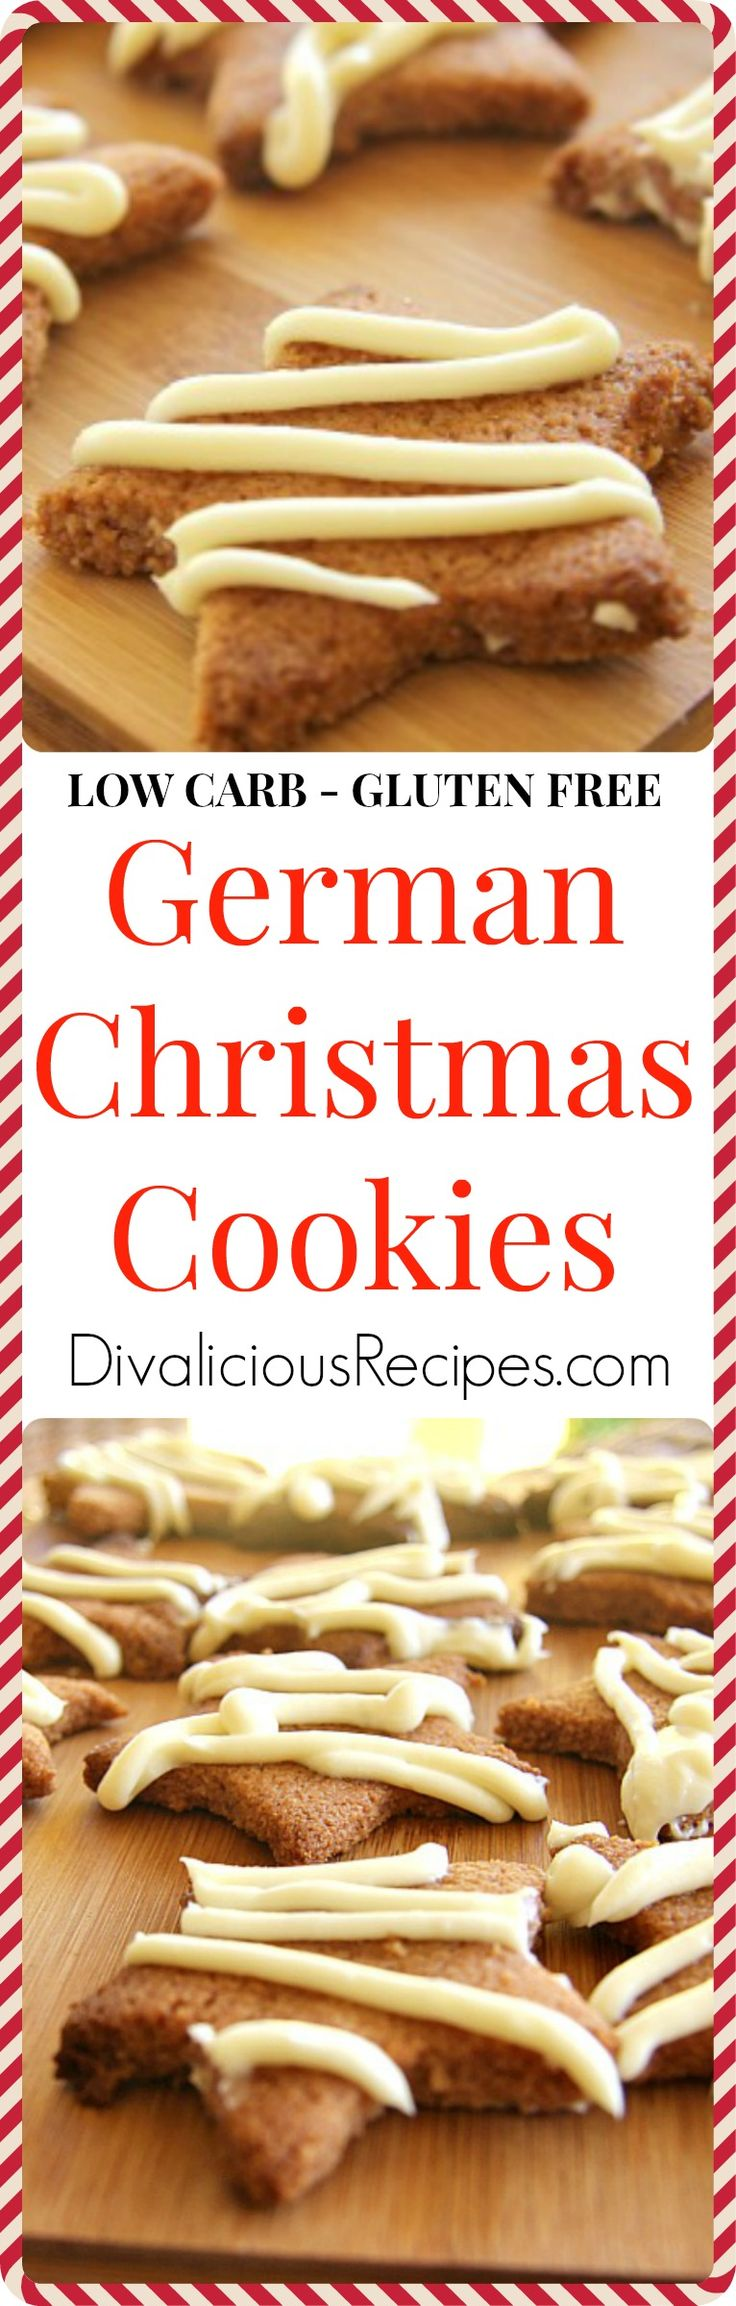 Cinnamon Christmas cookies that are low carb and gluten free.